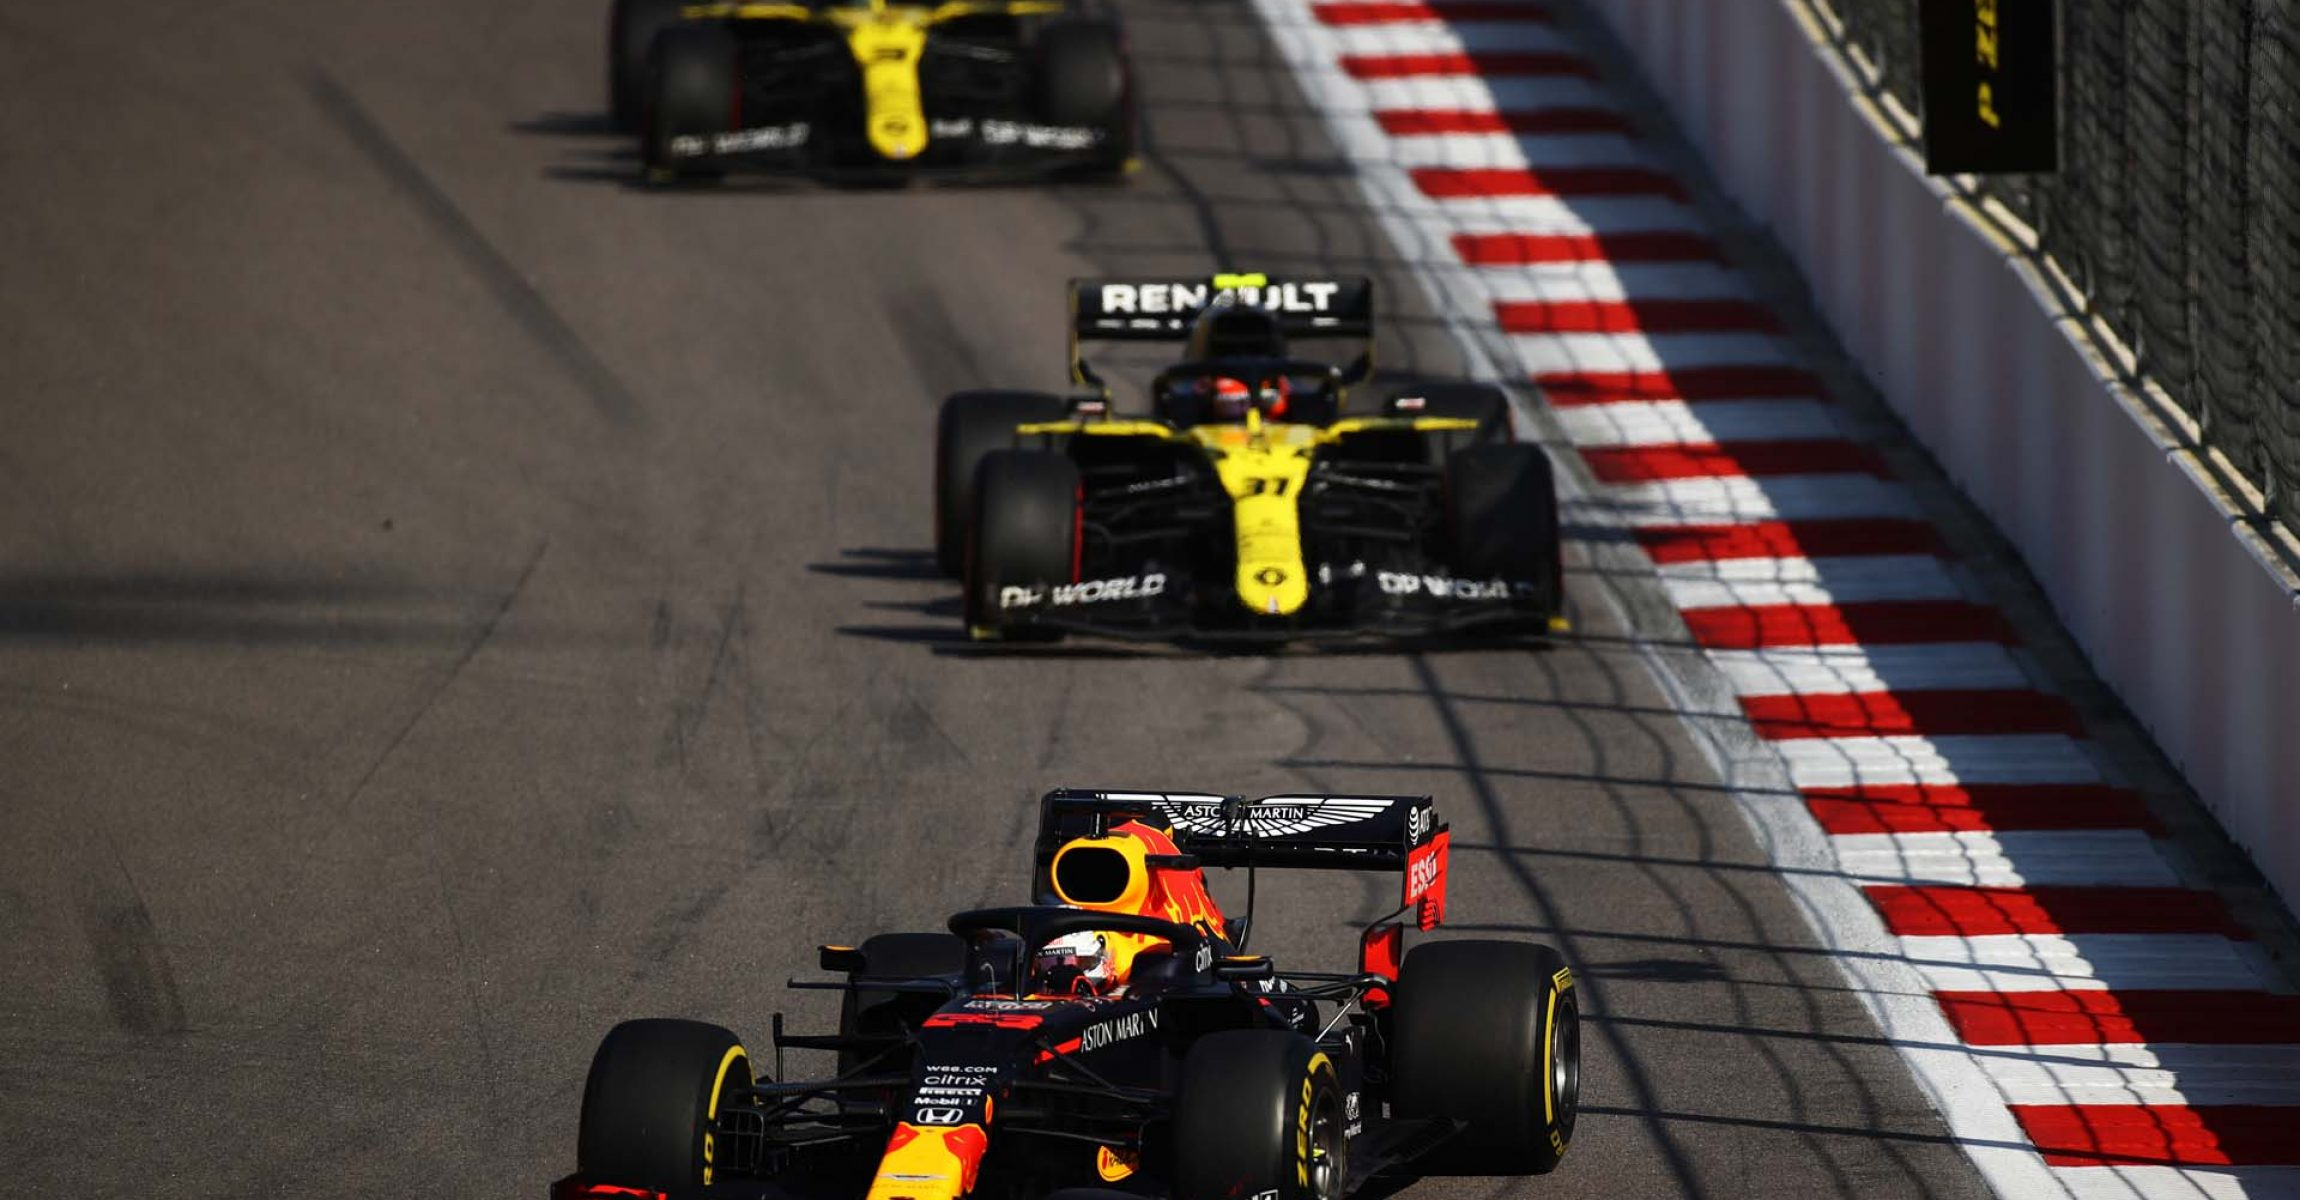 SOCHI, RUSSIA - SEPTEMBER 27: Max Verstappen of the Netherlands driving the (33) Aston Martin Red Bull Racing RB16 leads Esteban Ocon of France driving the (31) Renault Sport Formula One Team RS20 and Daniel Ricciardo of Australia driving the (3) Renault Sport Formula One Team RS20 during the F1 Grand Prix of Russia at Sochi Autodrom on September 27, 2020 in Sochi, Russia. (Photo by Bryn Lennon/Getty Images)